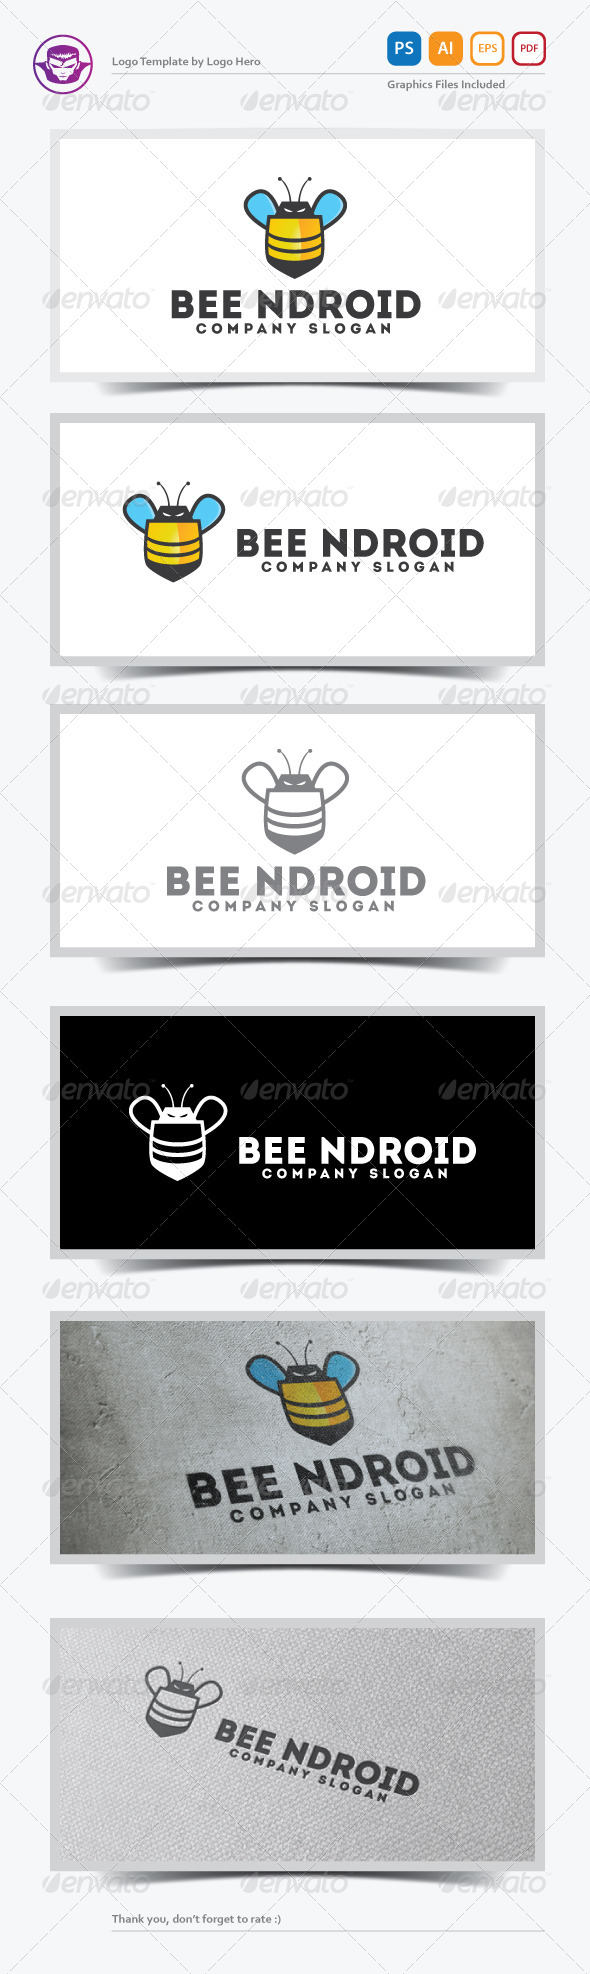 GraphicRiver Bee Ndroid Logo Template 5583394